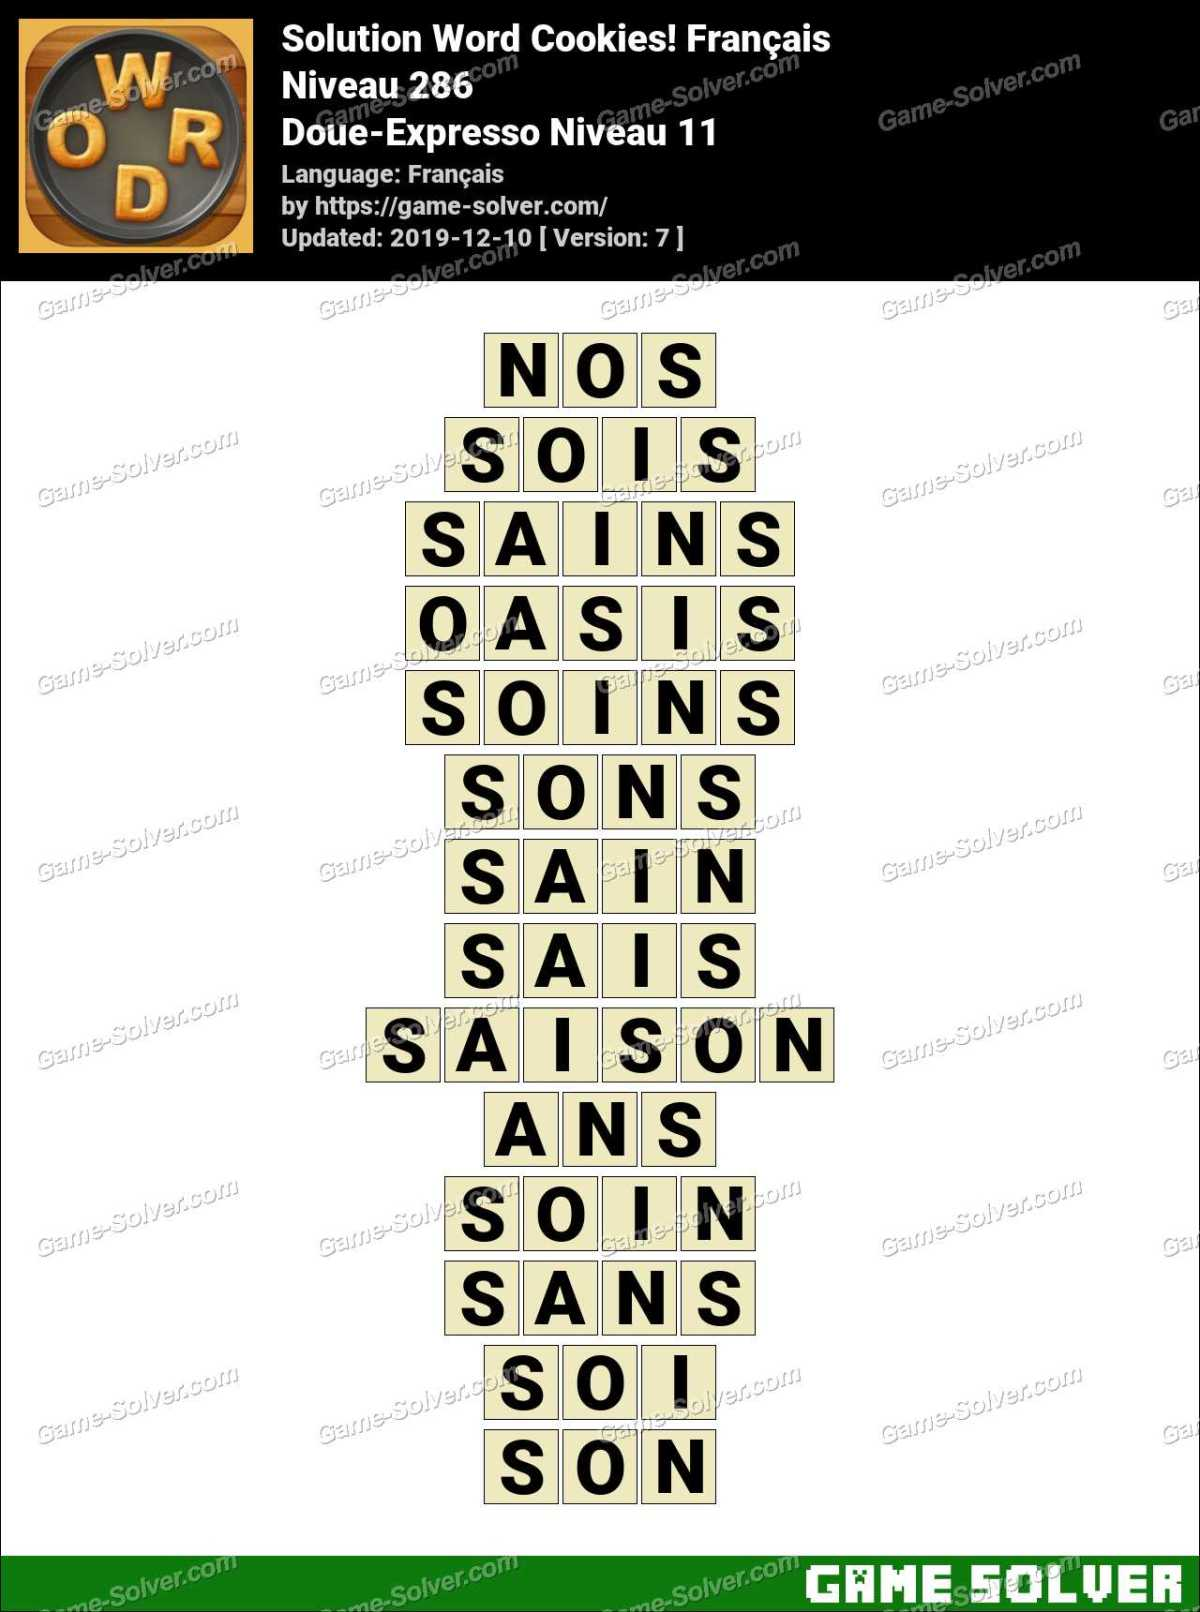 Solution Word Cookies Doue-Expresso Niveau 11